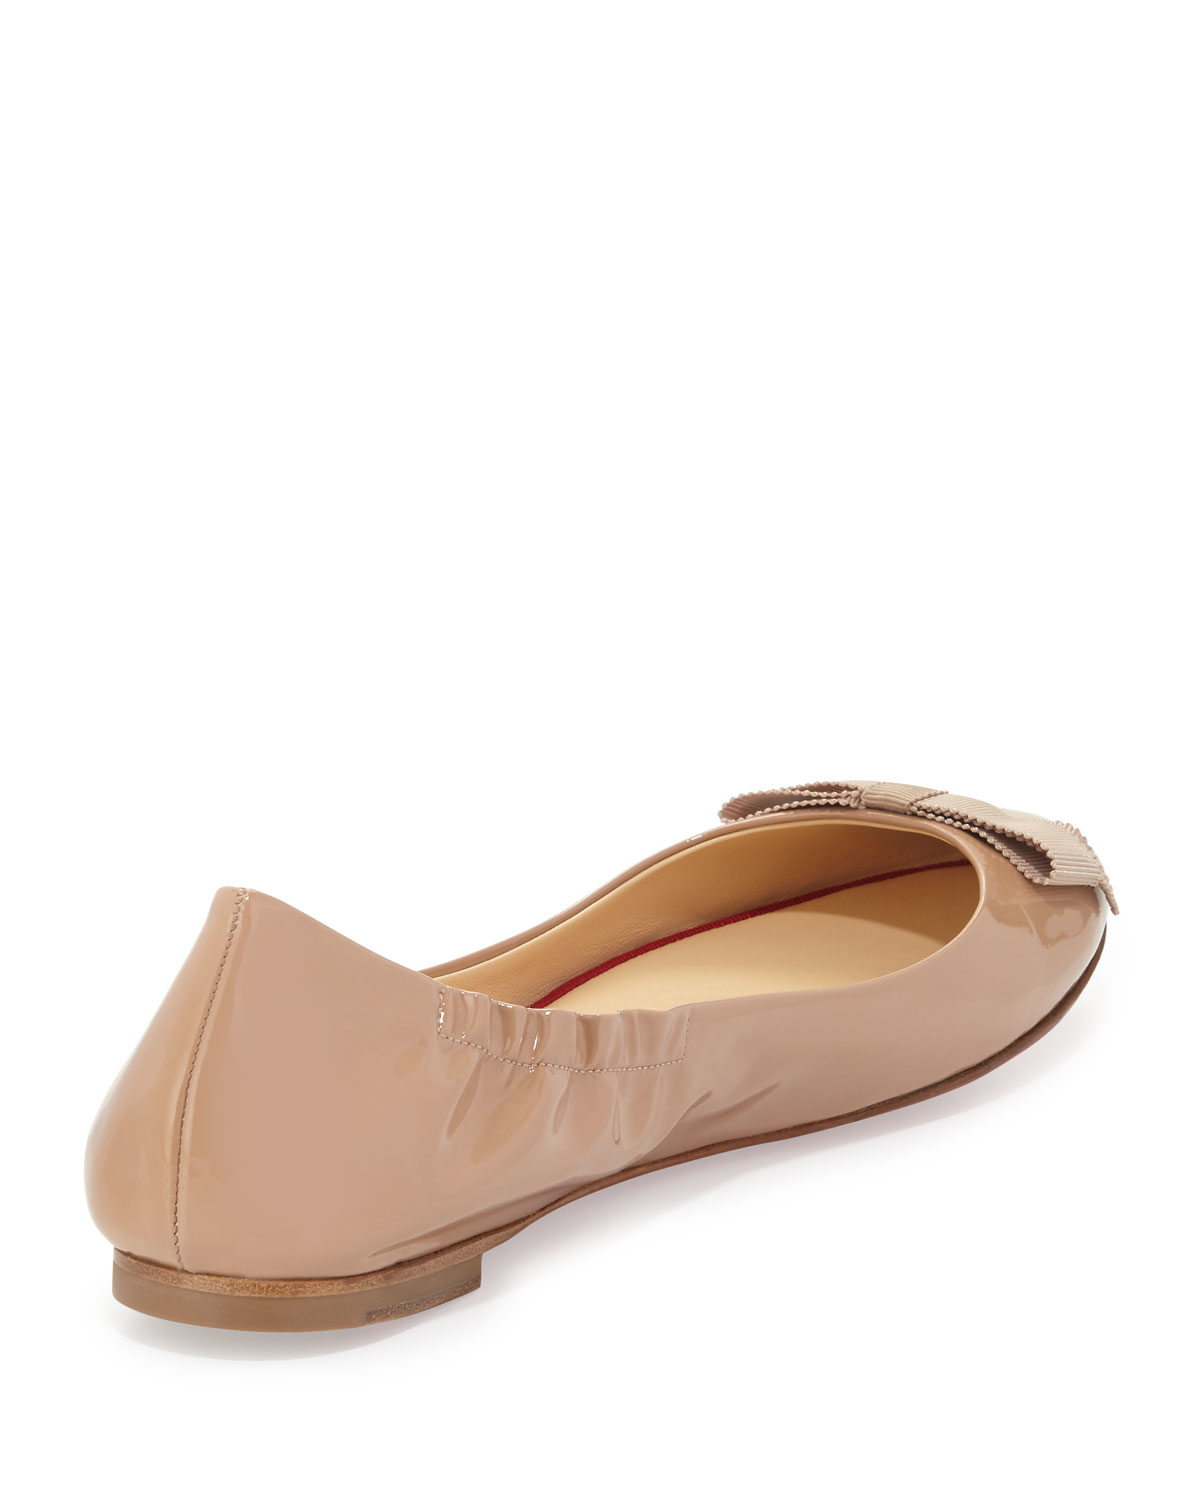 Christian Louboutin Patent Leather Ballet Flats